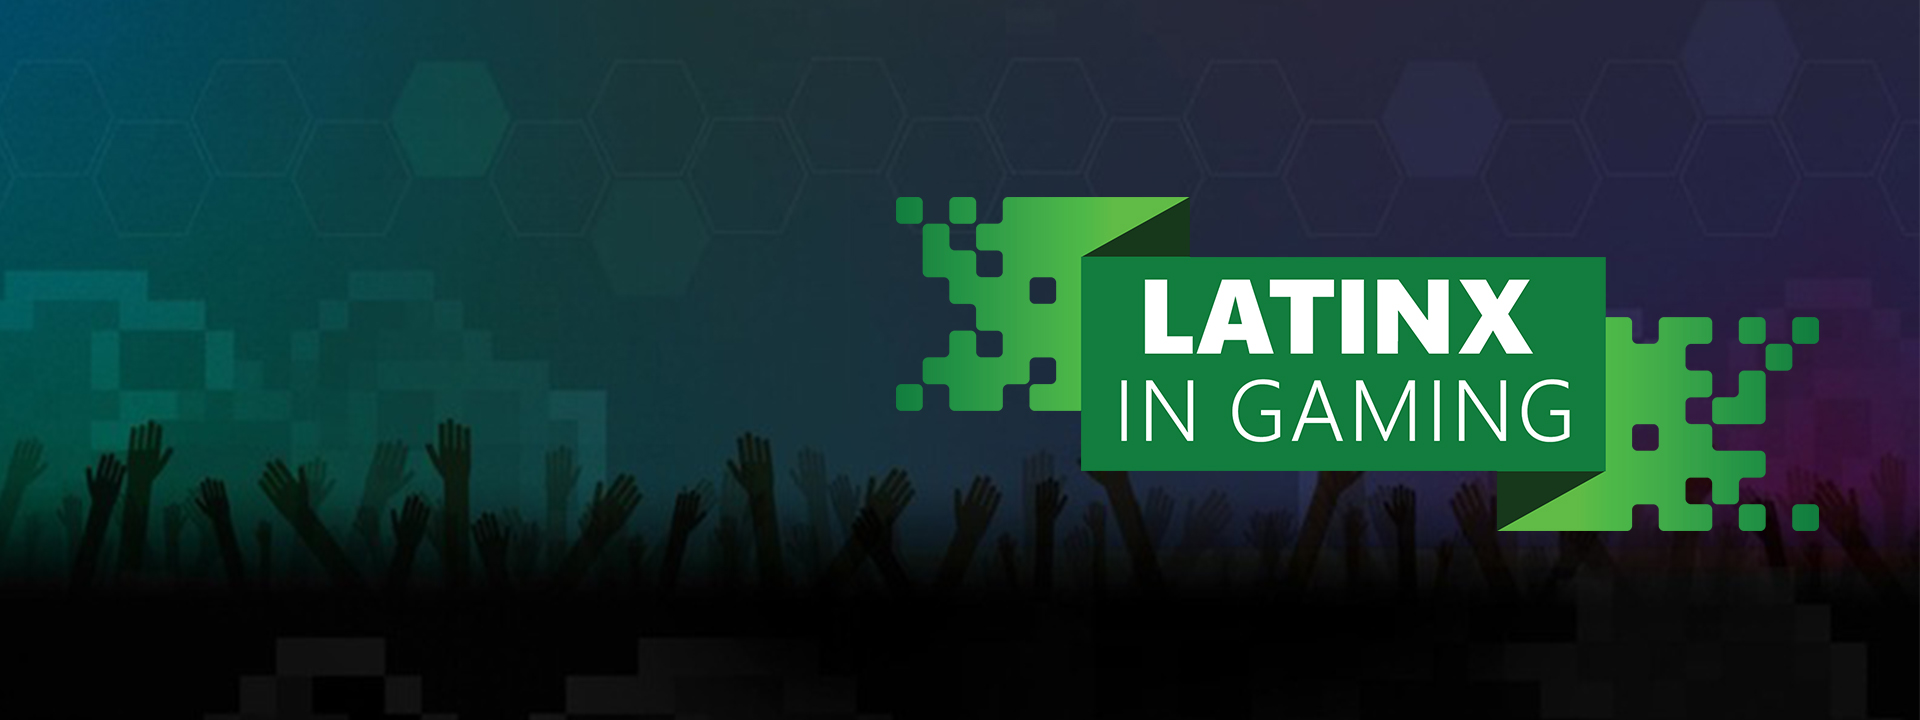 Latinx in Gaming Event Logo